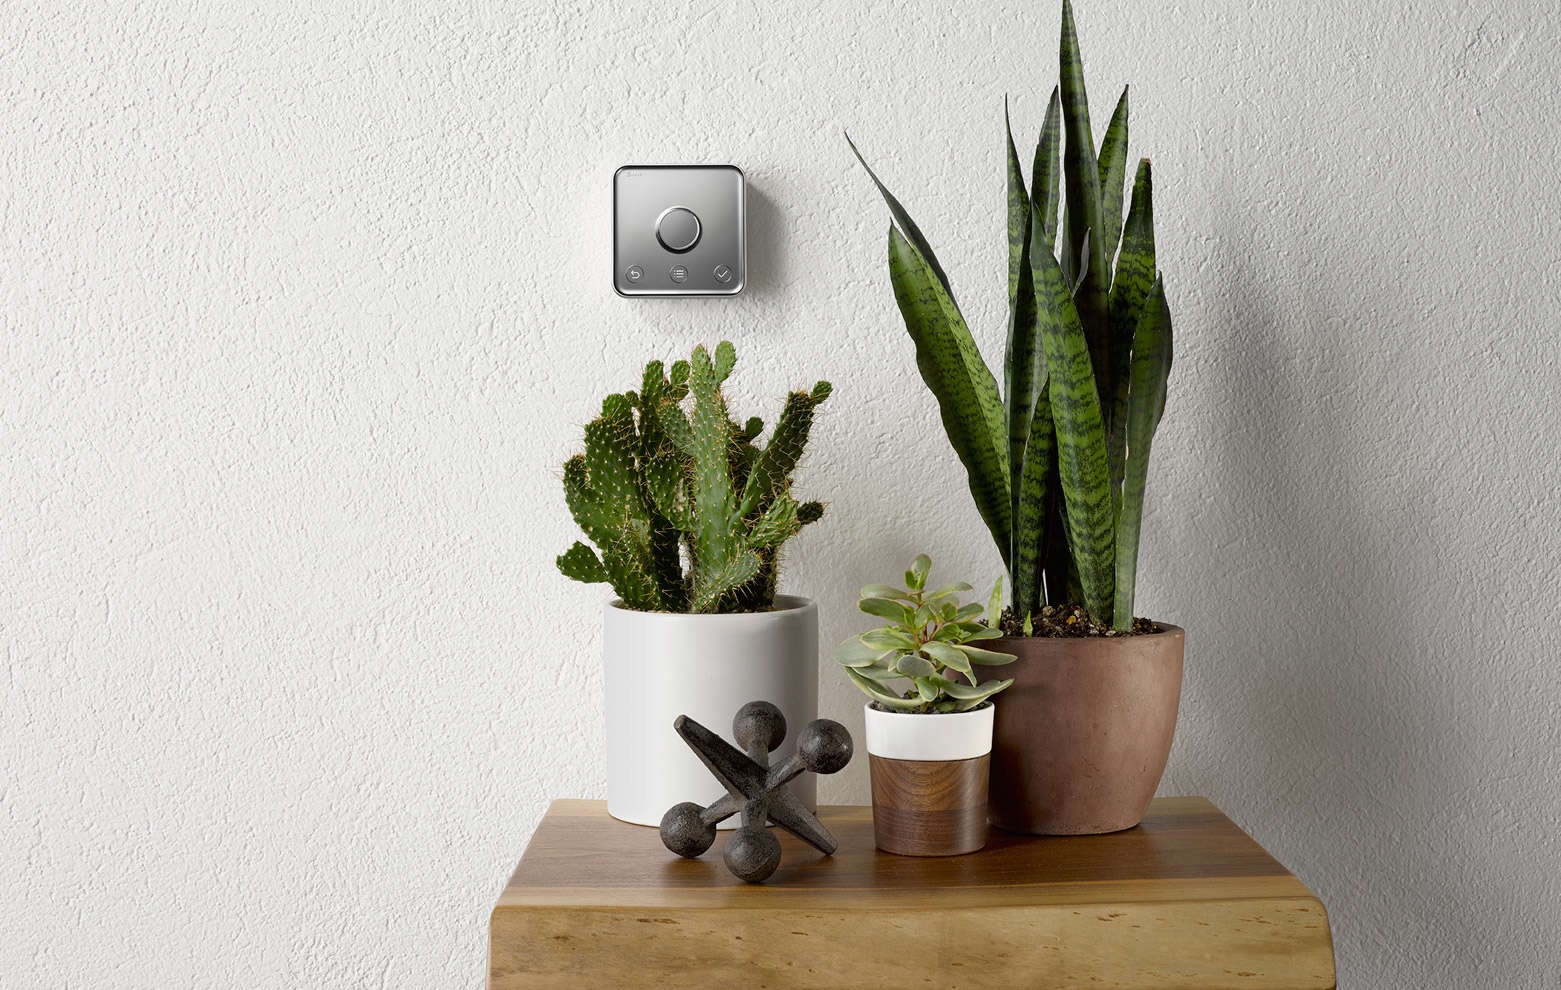 hive-thermostat-20